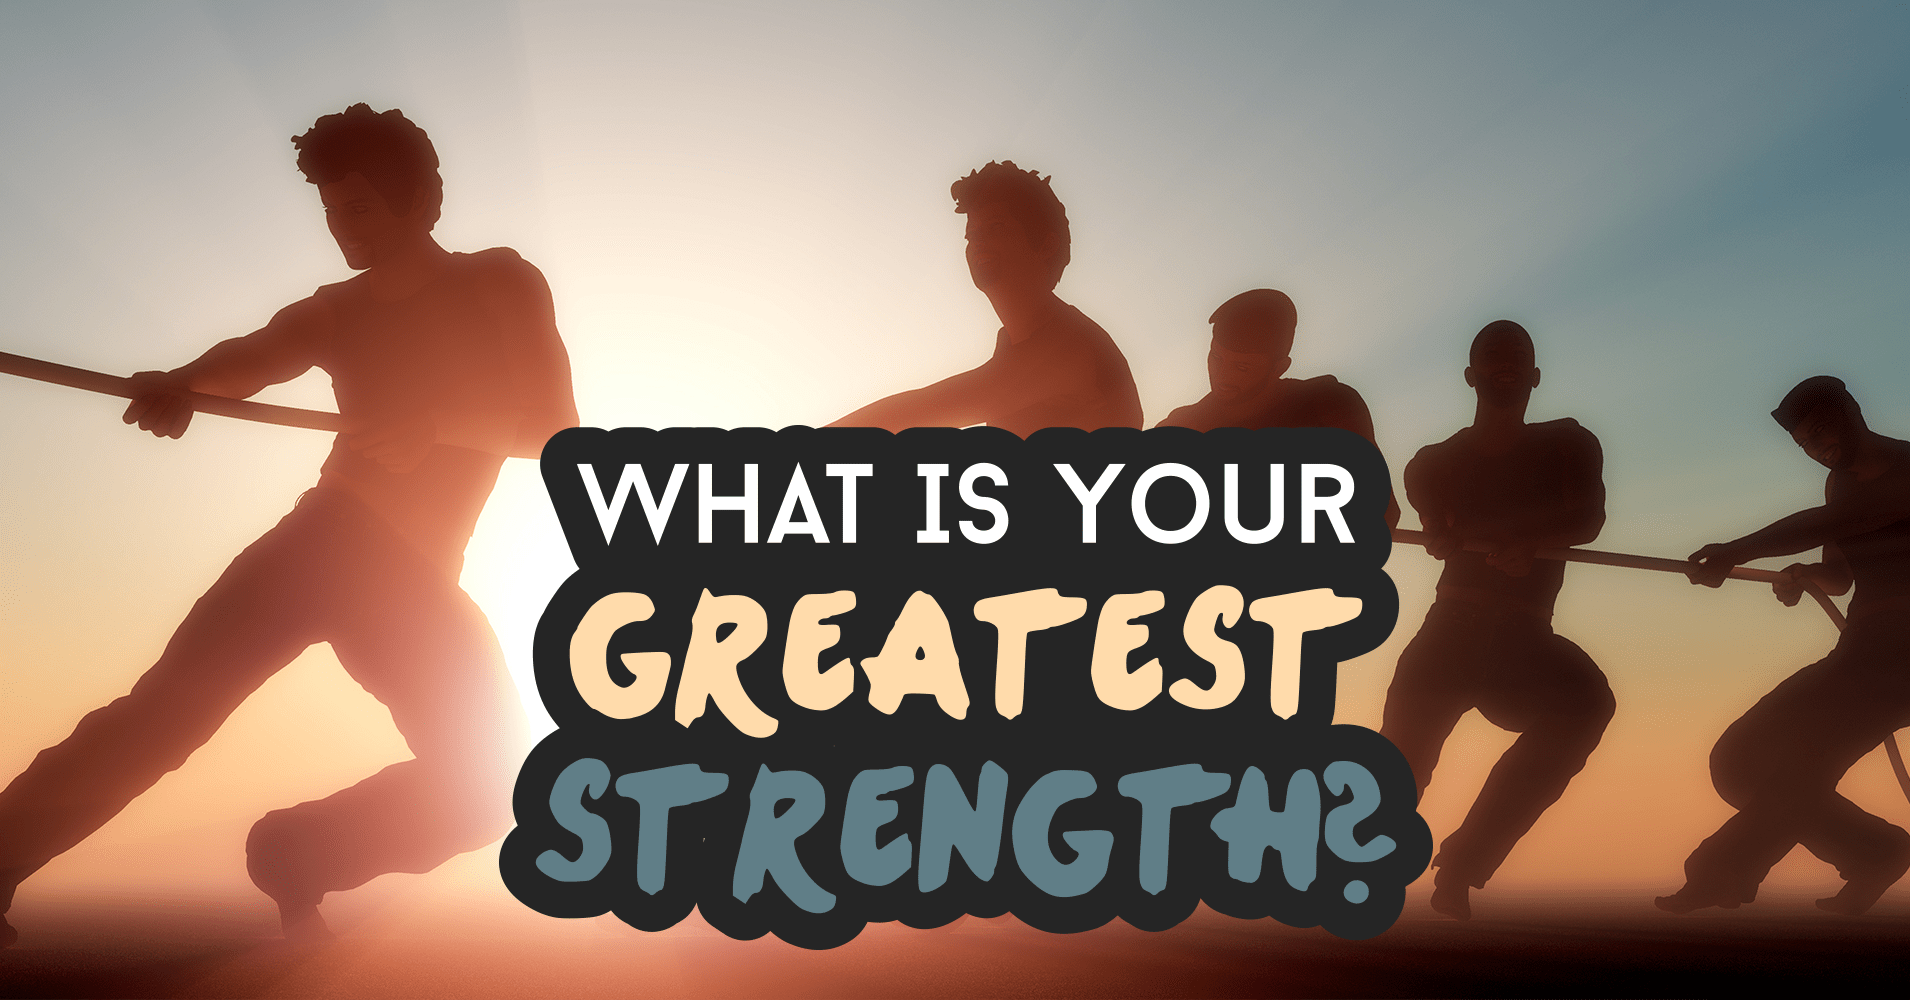 What Is Your Greatest Strength